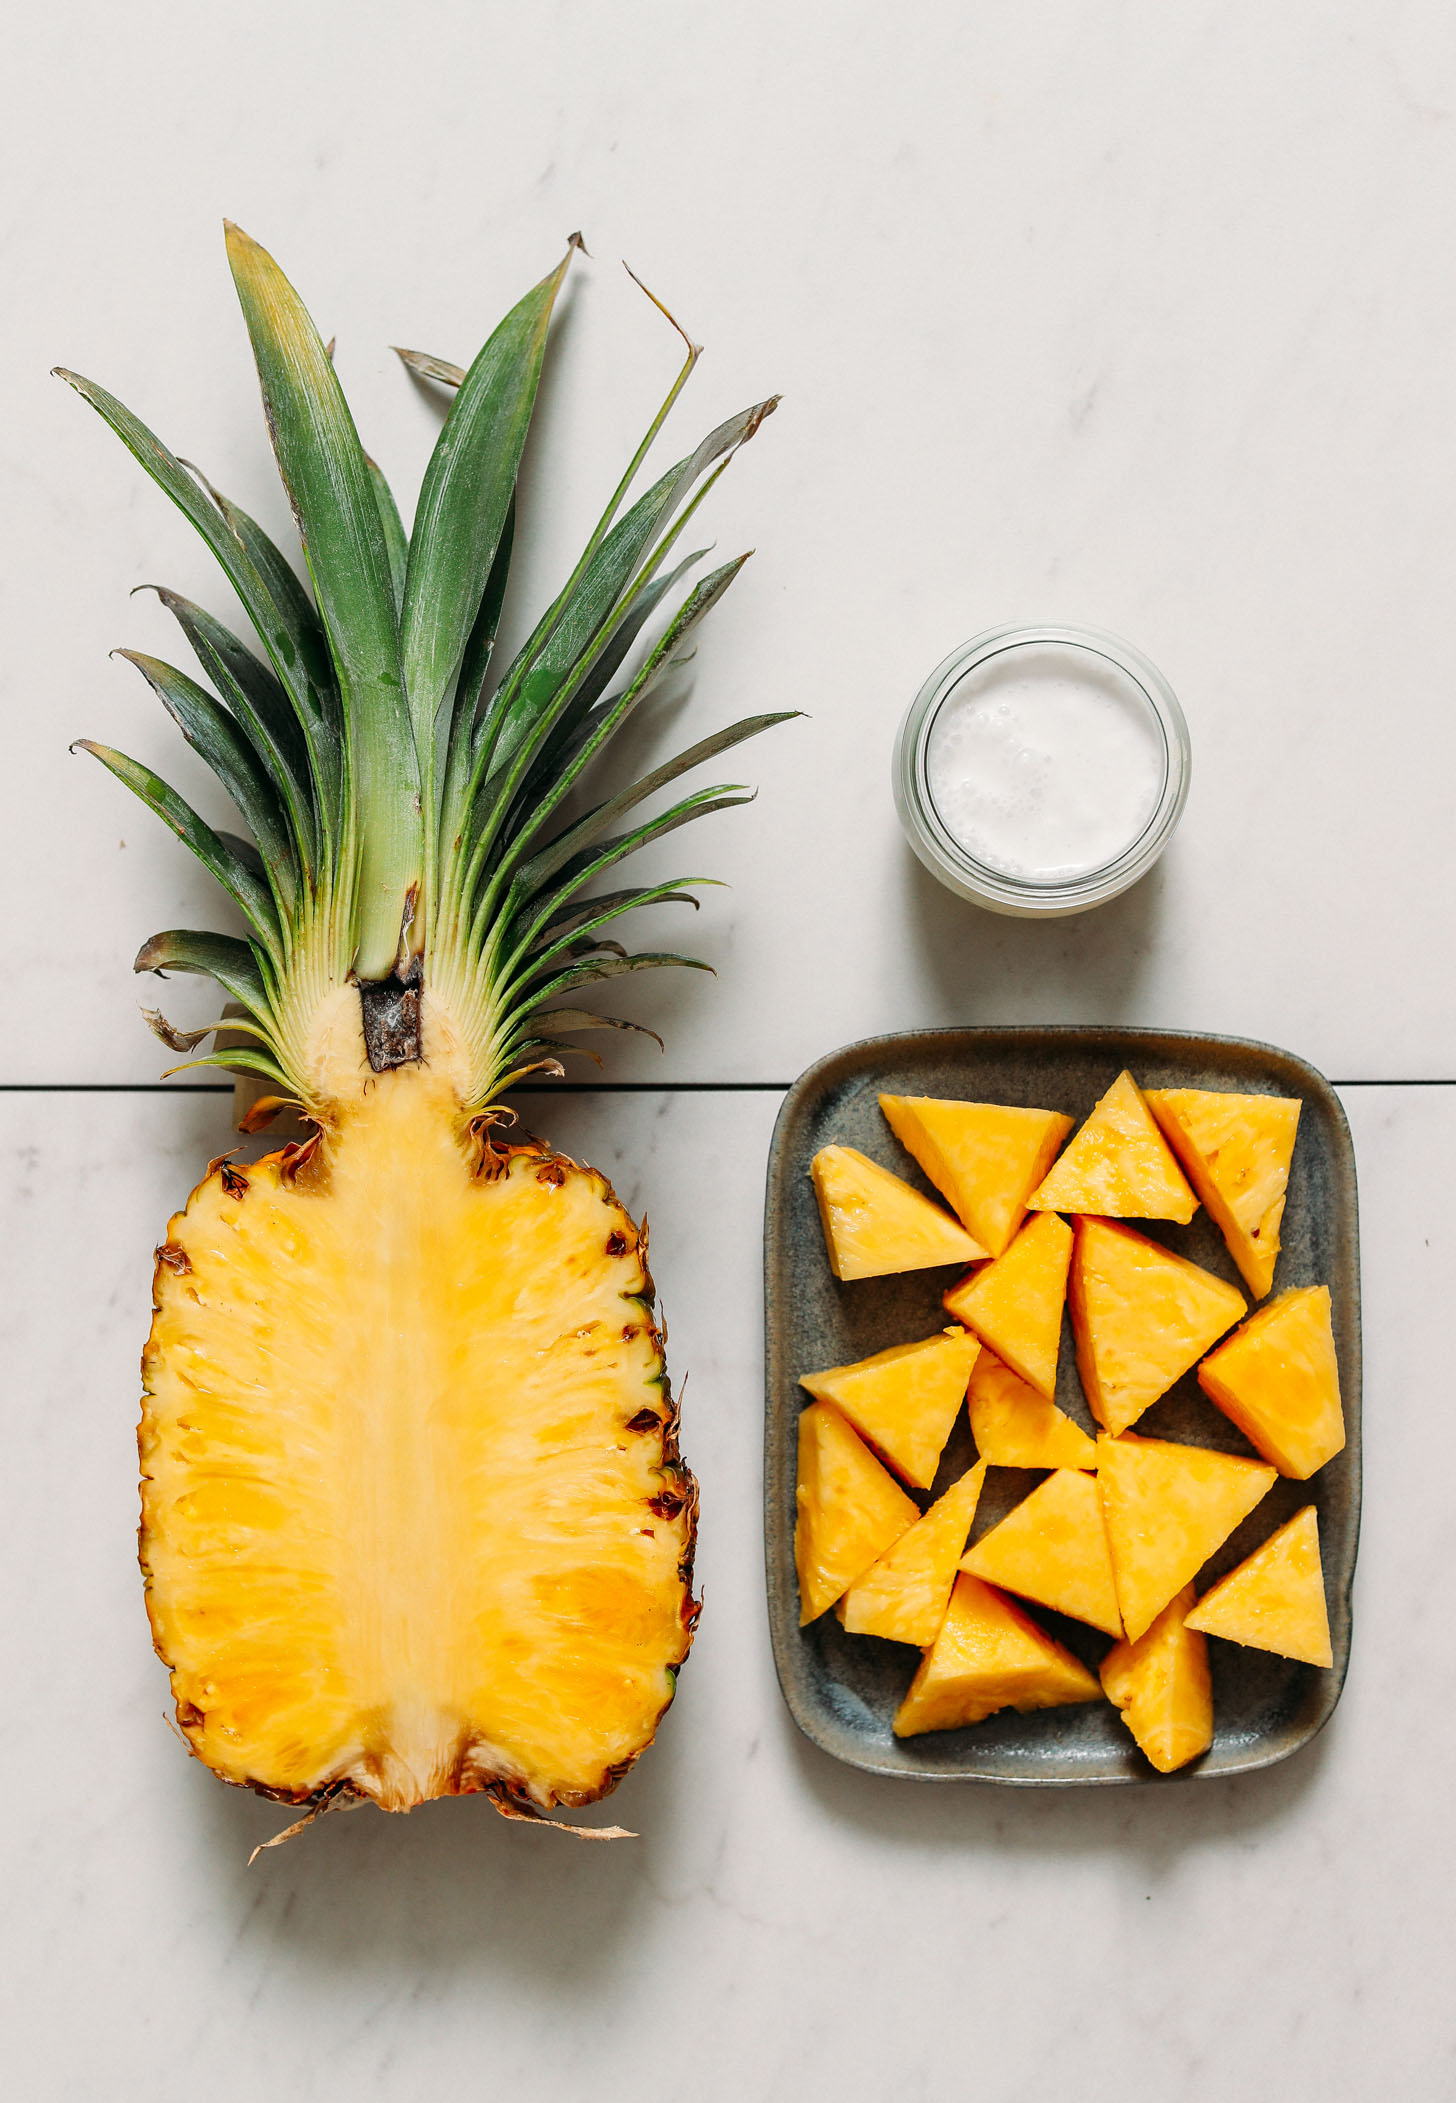 Fresh pineapple and coconut milk